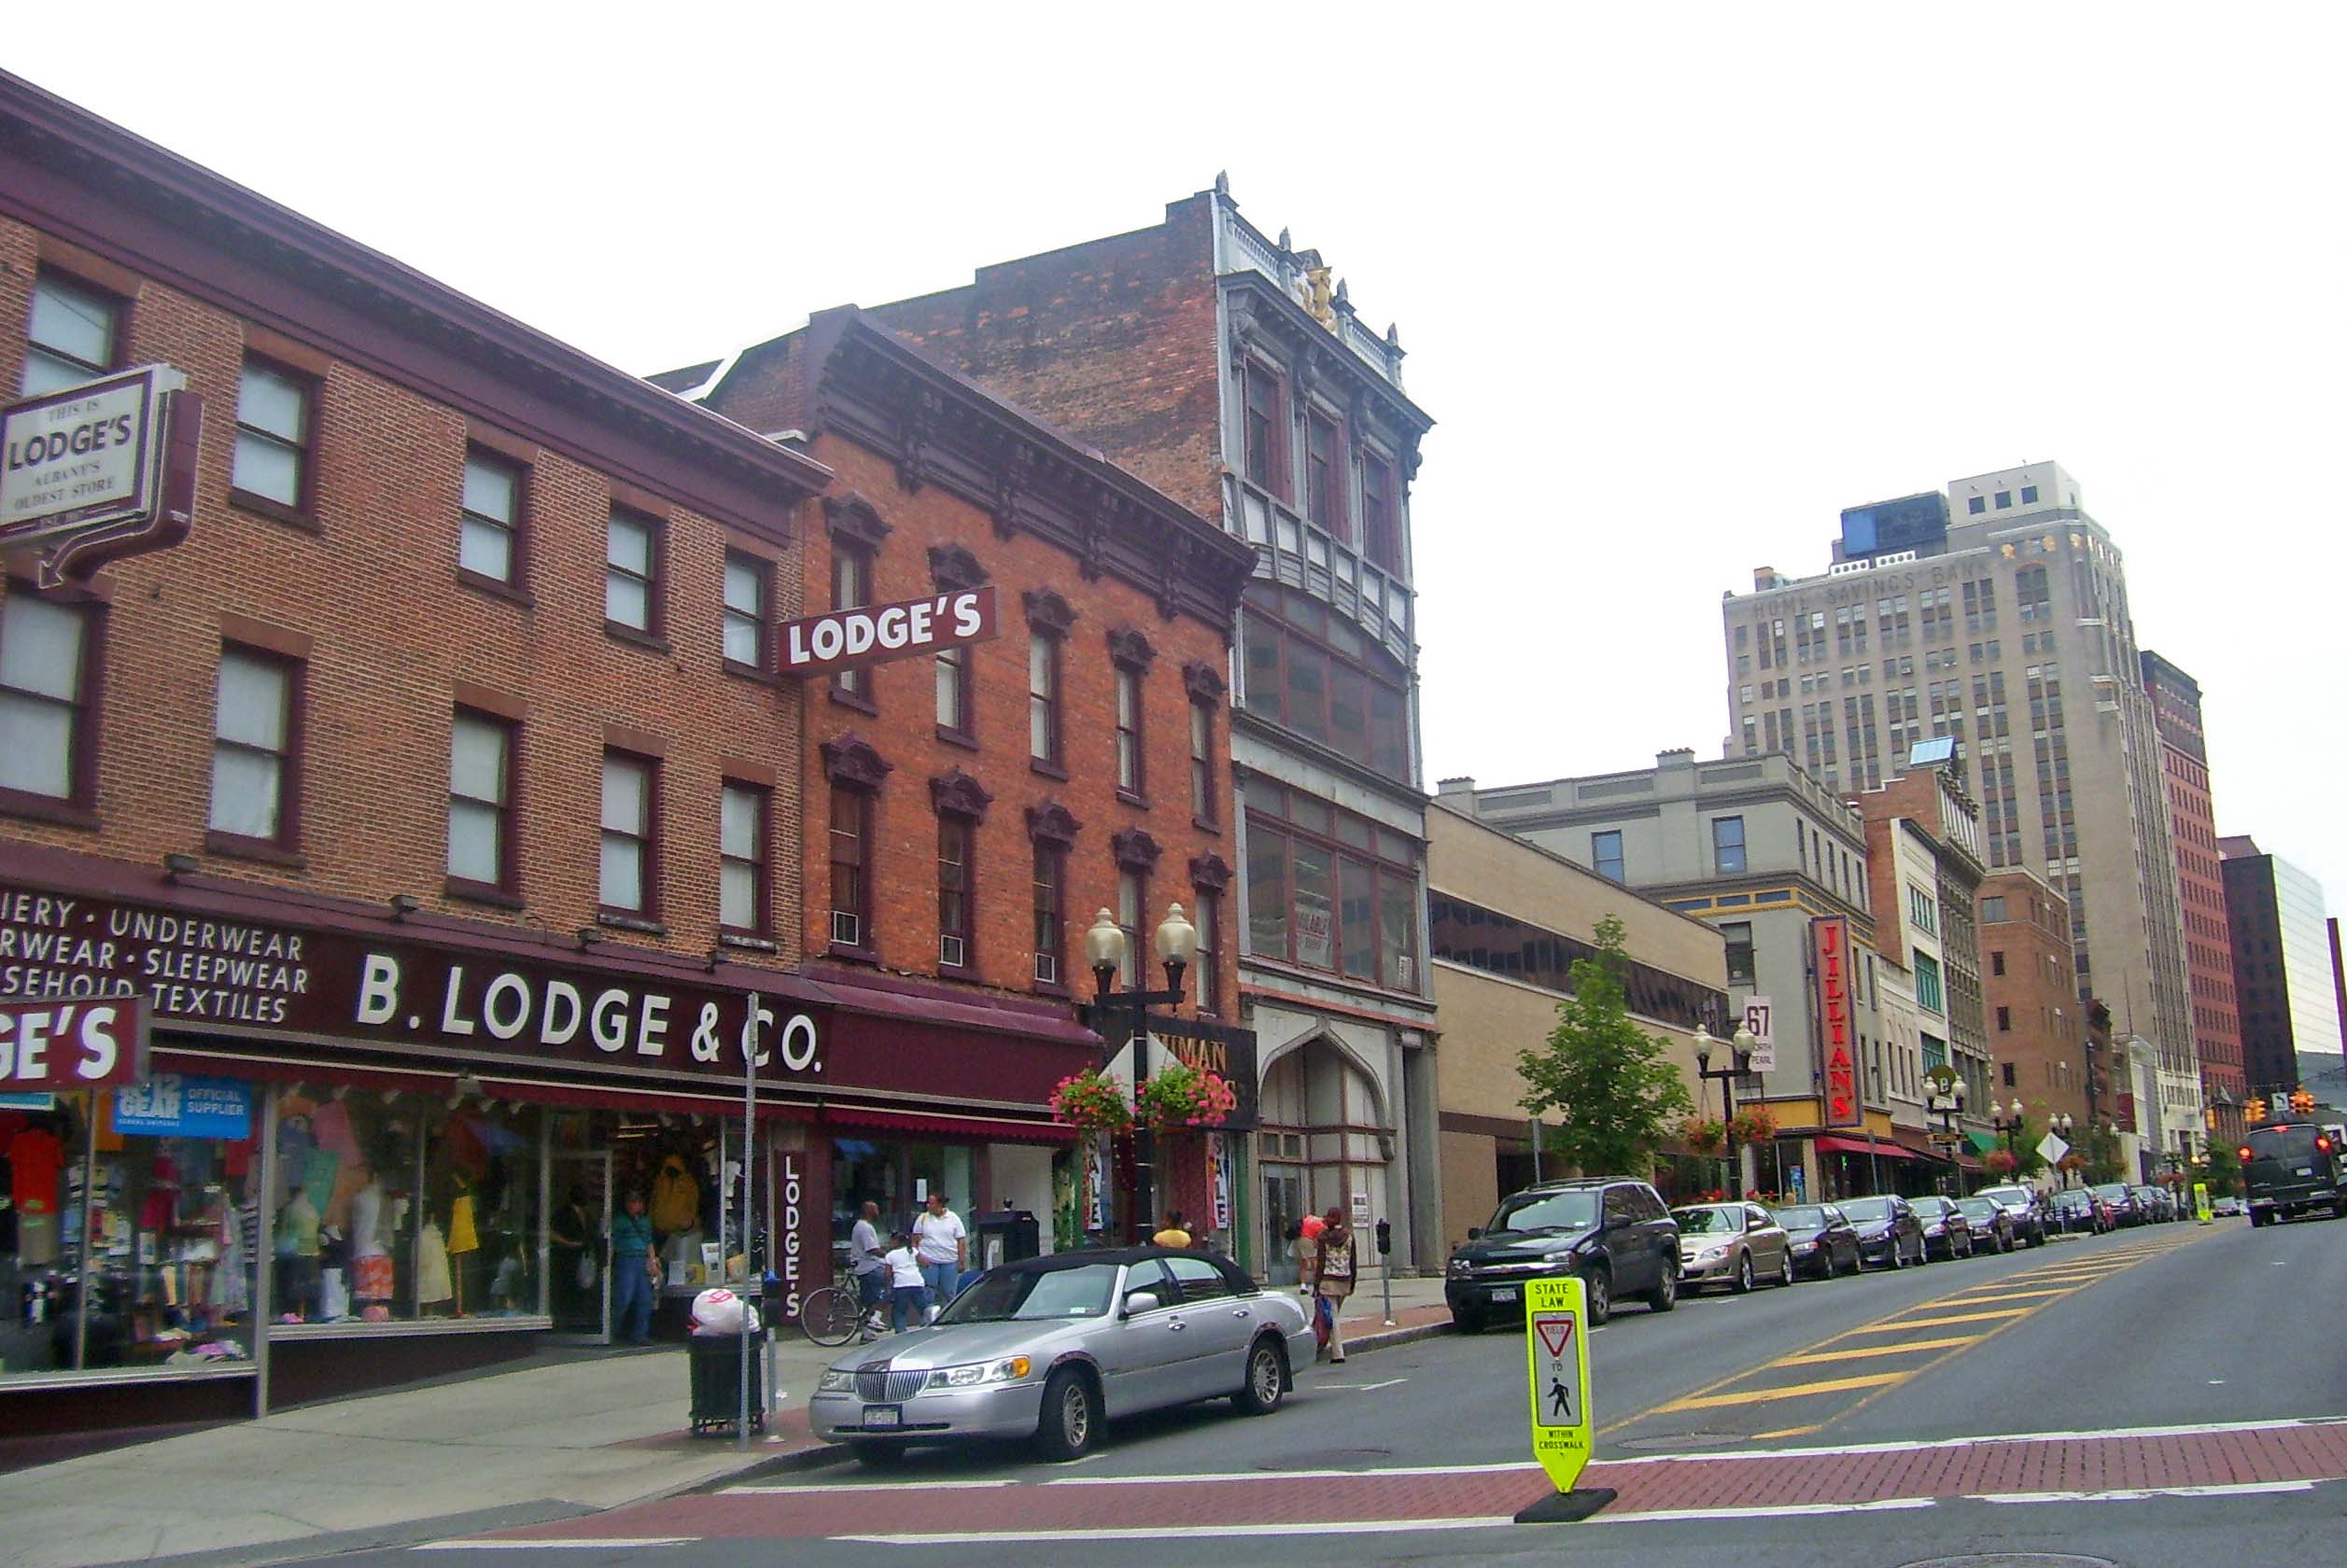 North_Pearl_Street_from_Steuben_Street,_downtown_Albany,_NY